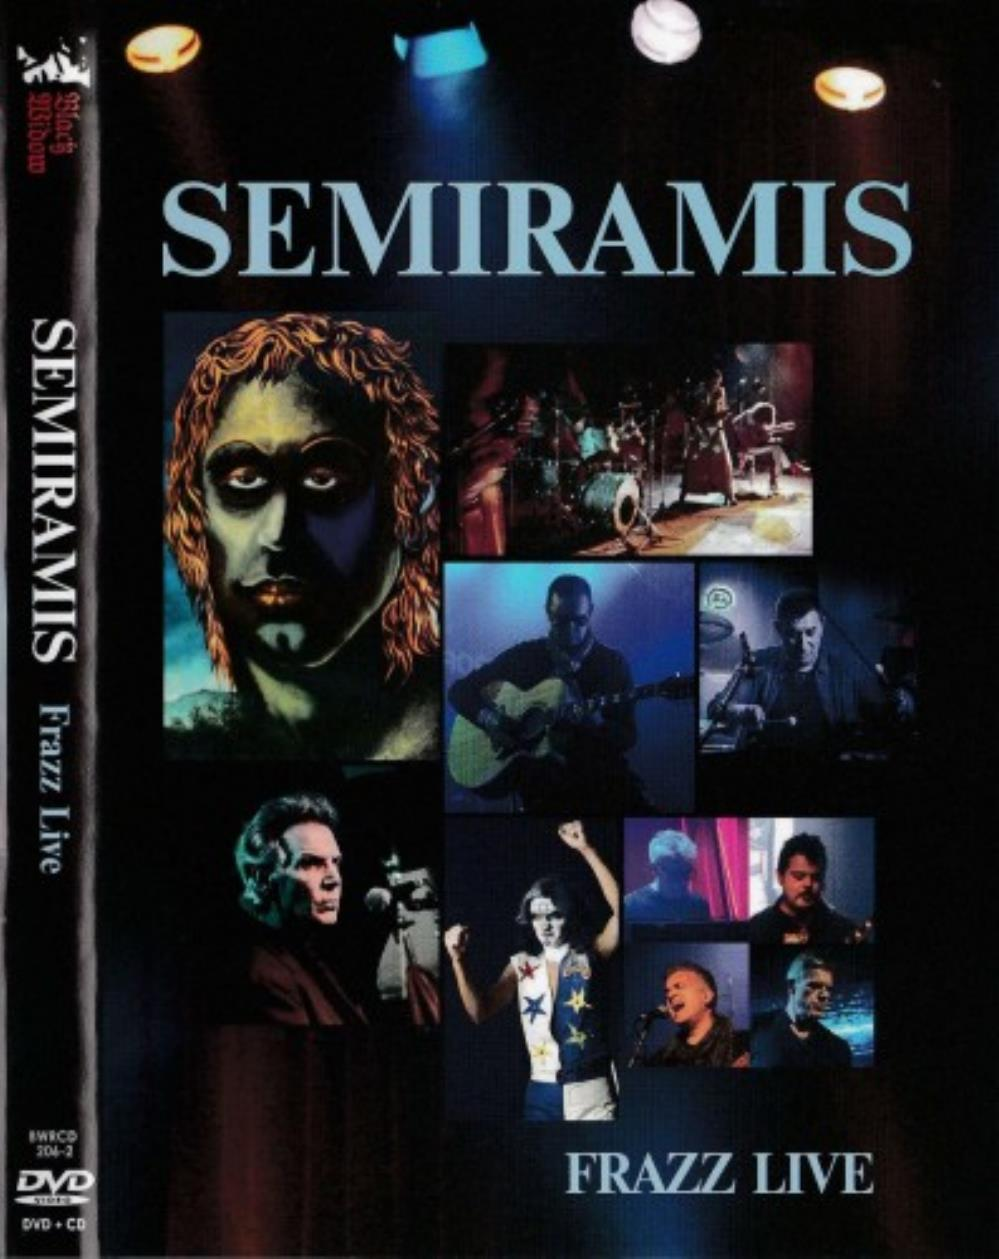 Semiramis - Frazz Live CD (album) cover